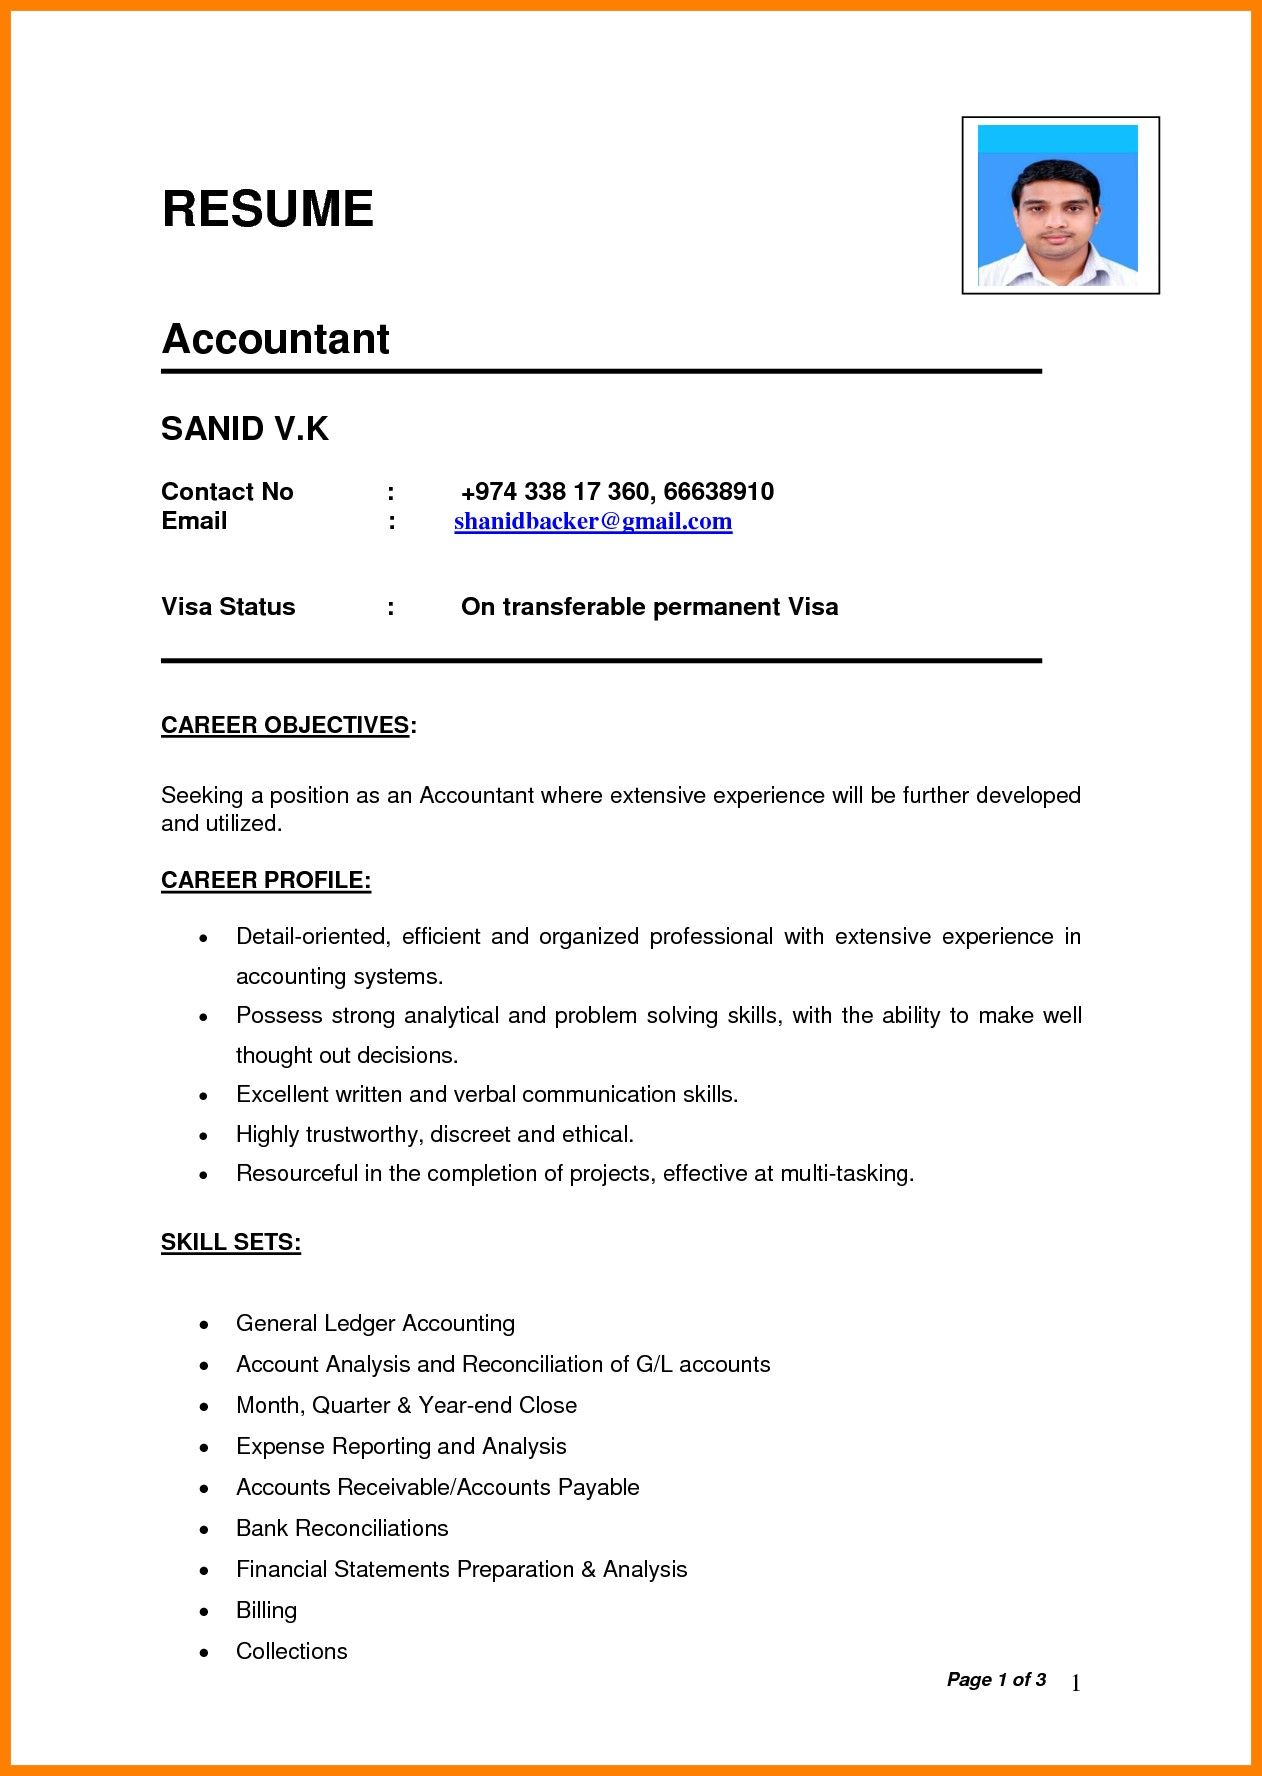 Accountant Resume Samples Pdf. Best Of Accountant Resume